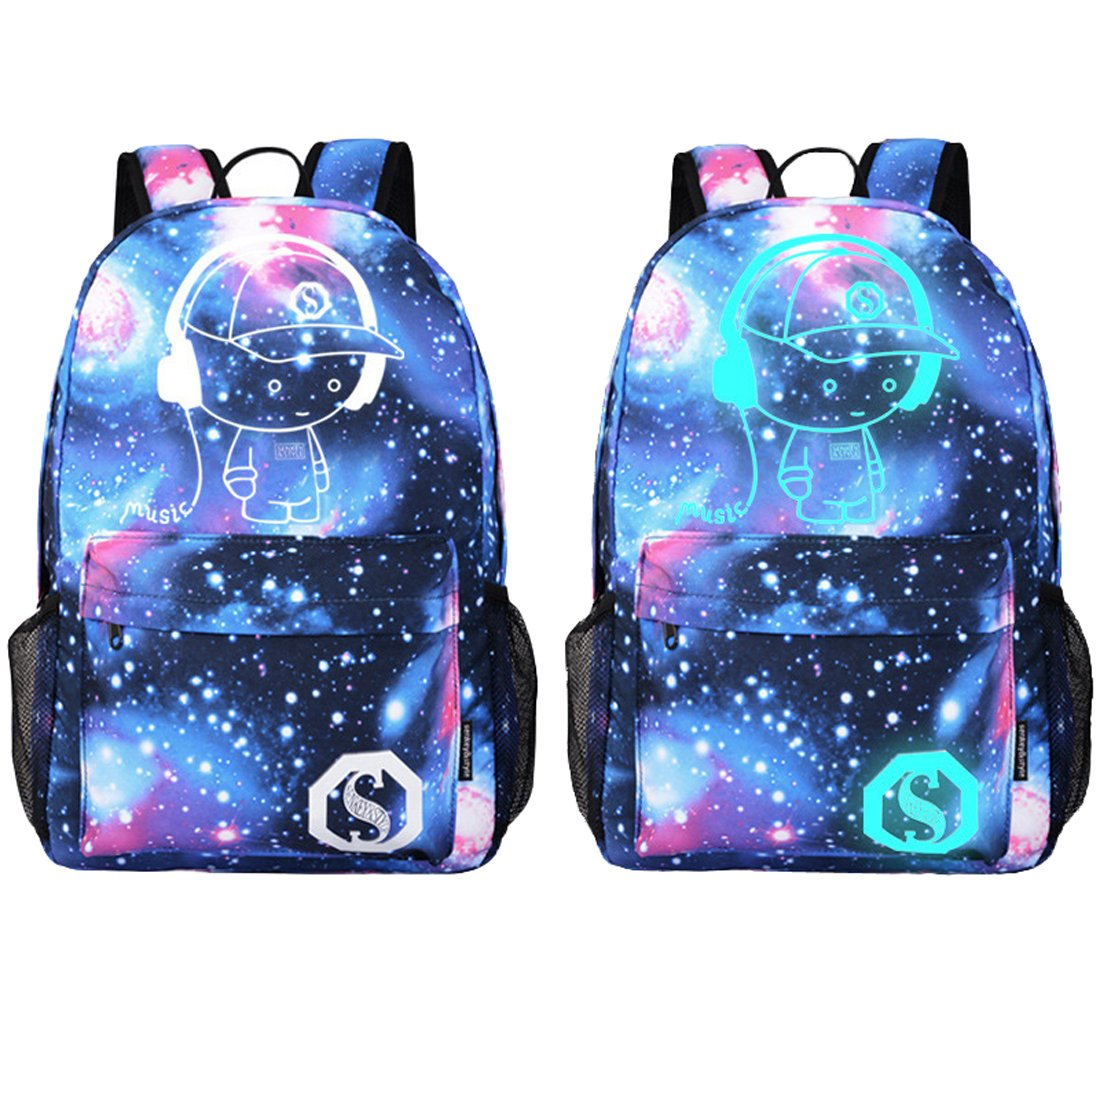 Luminous Backpack with USB Charging Port and Anti-theft Lock School Rucksack Laptop Backpack Travel Bag (Purple Galaxy Music Boy)